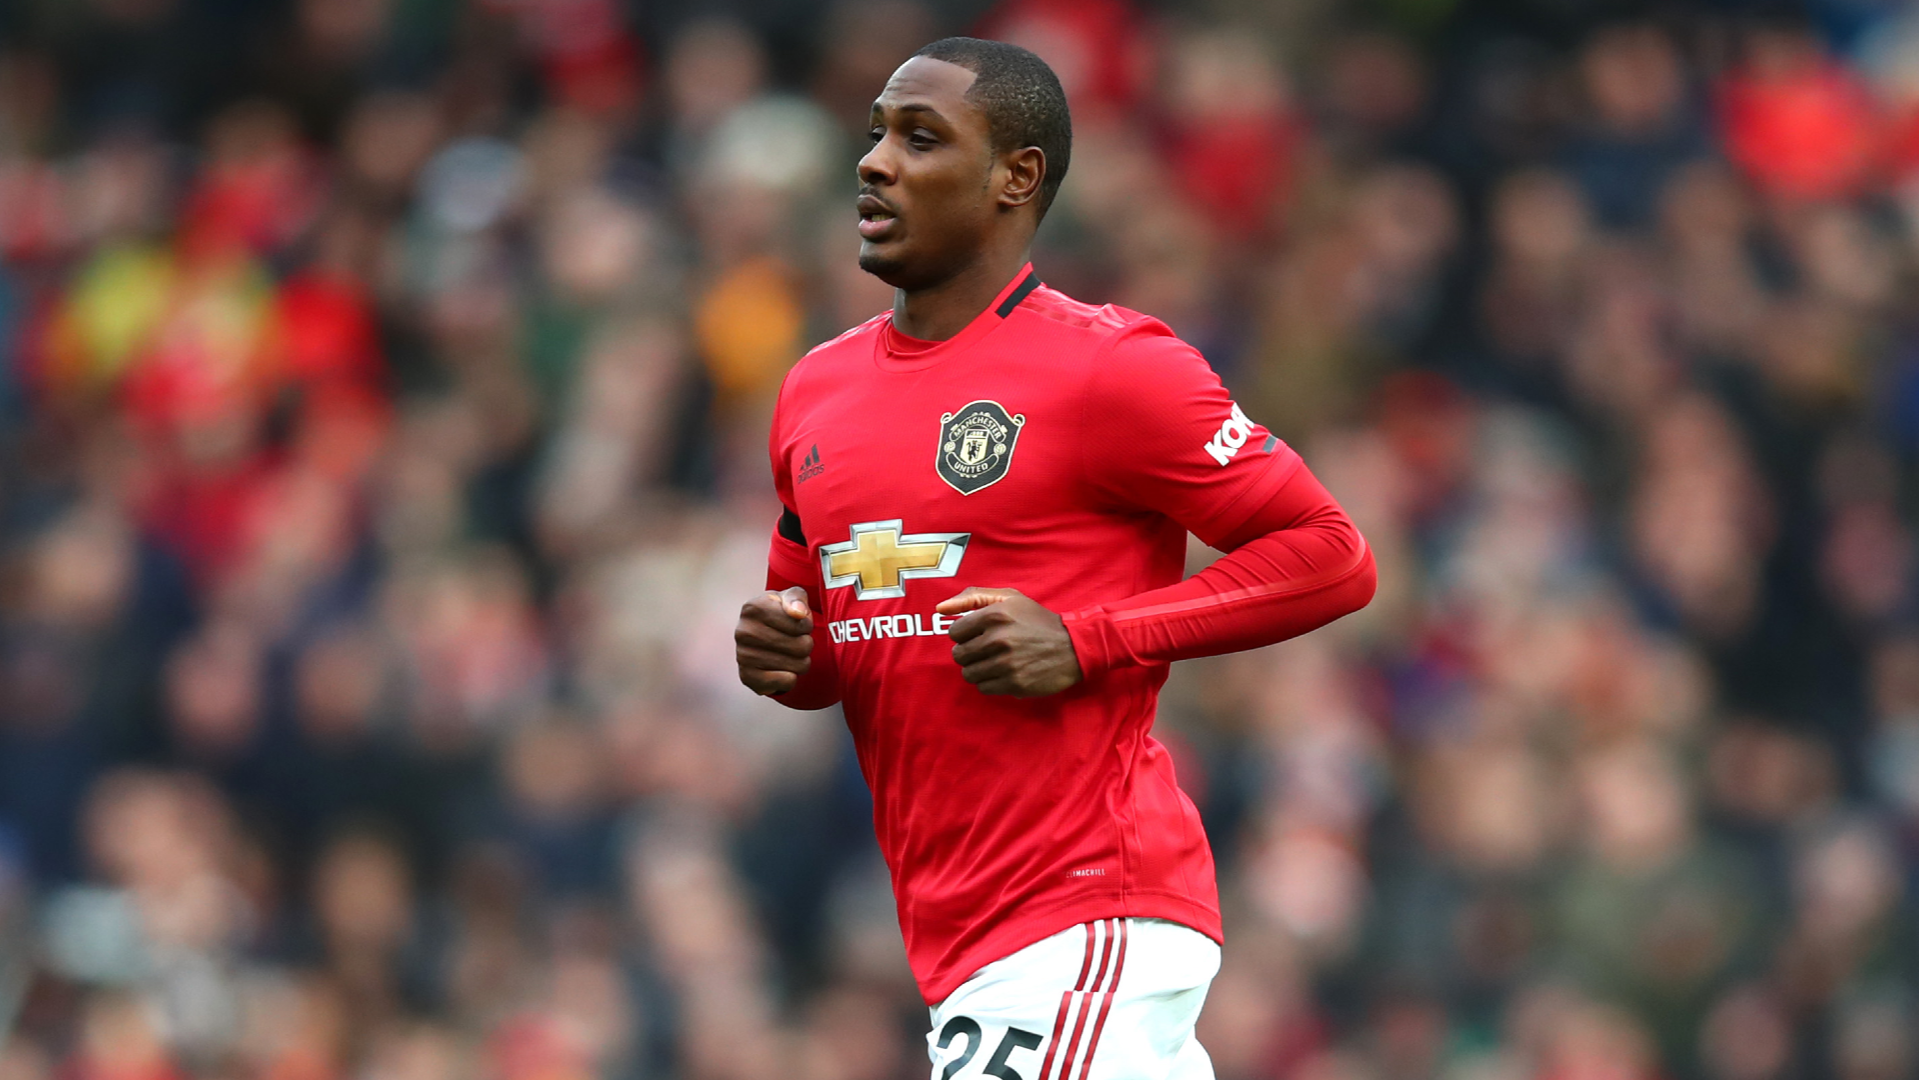 Odion Ighalo: Manchester United yet to make an extension offer